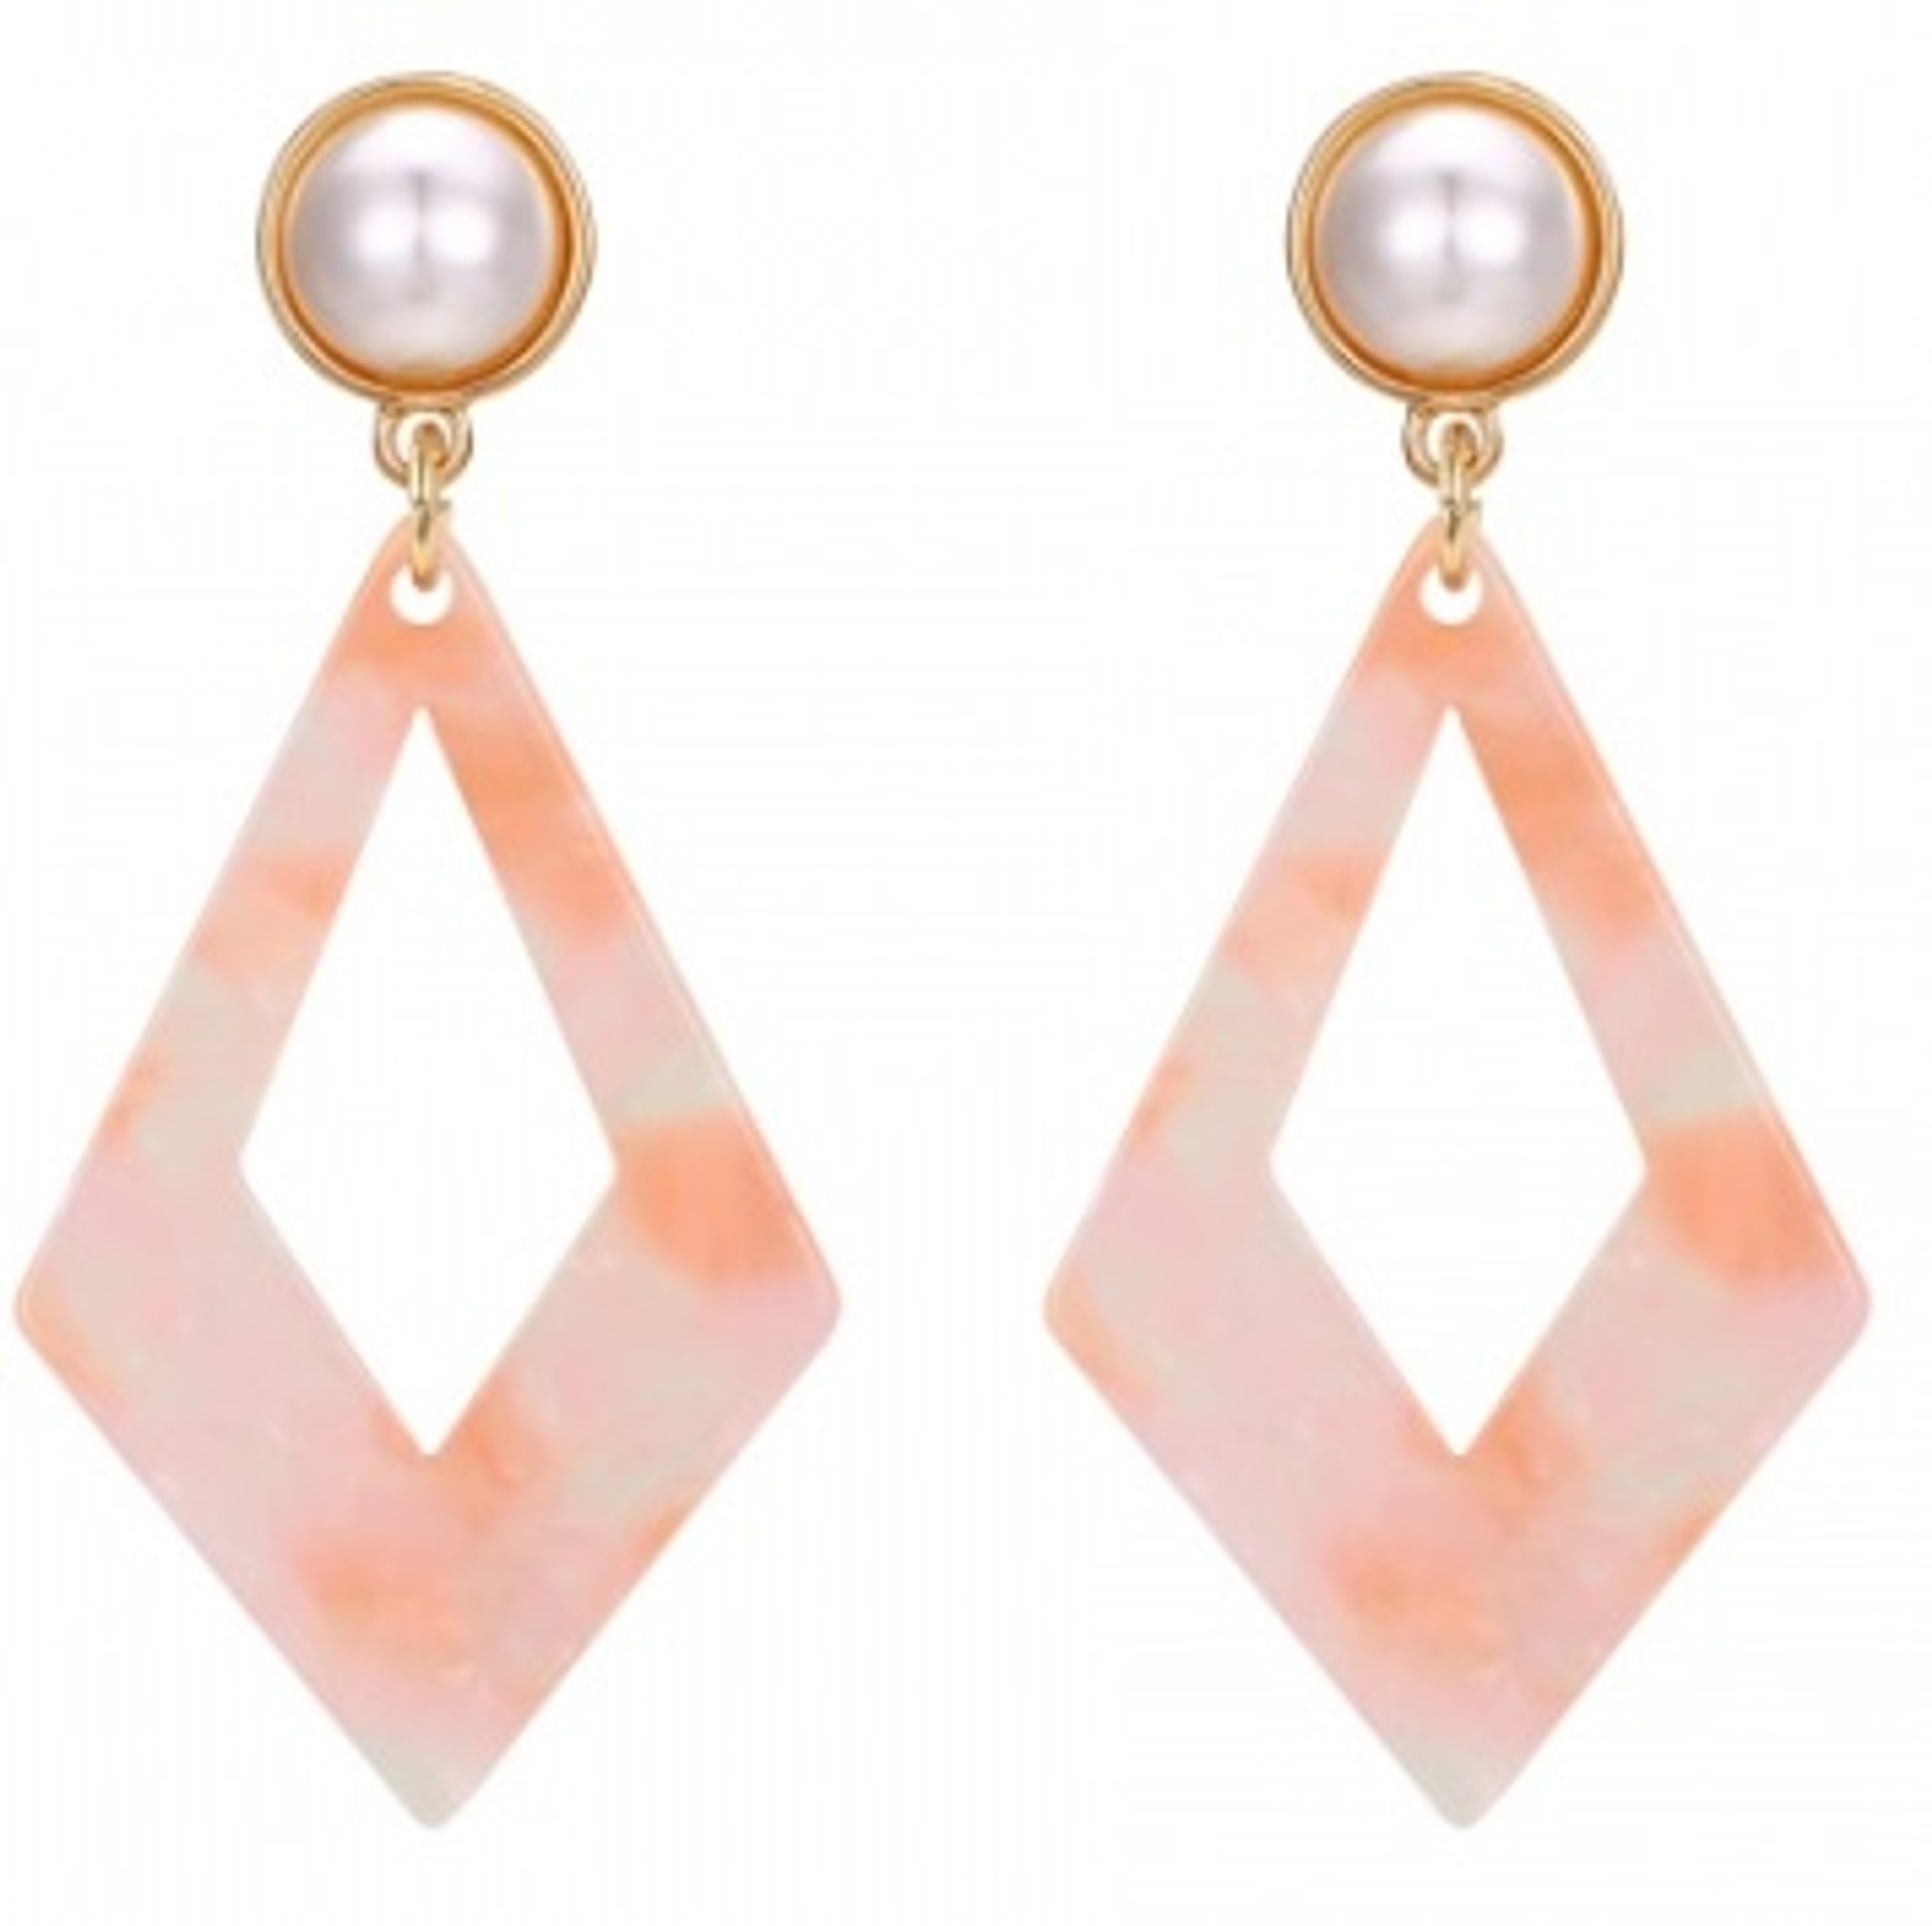 18k Gold-Plated Fashion Earrings